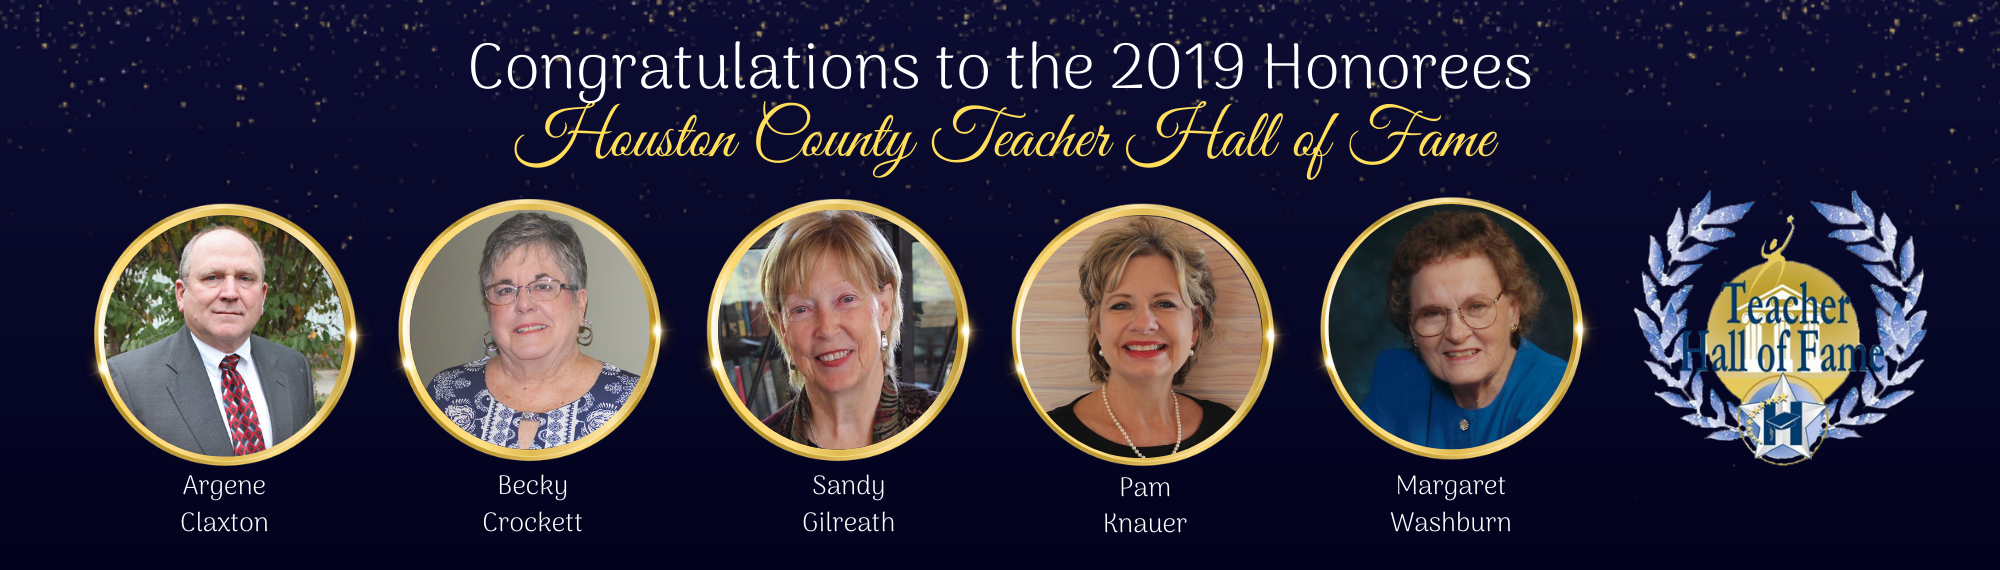 Teacher Hall of Fame 2019